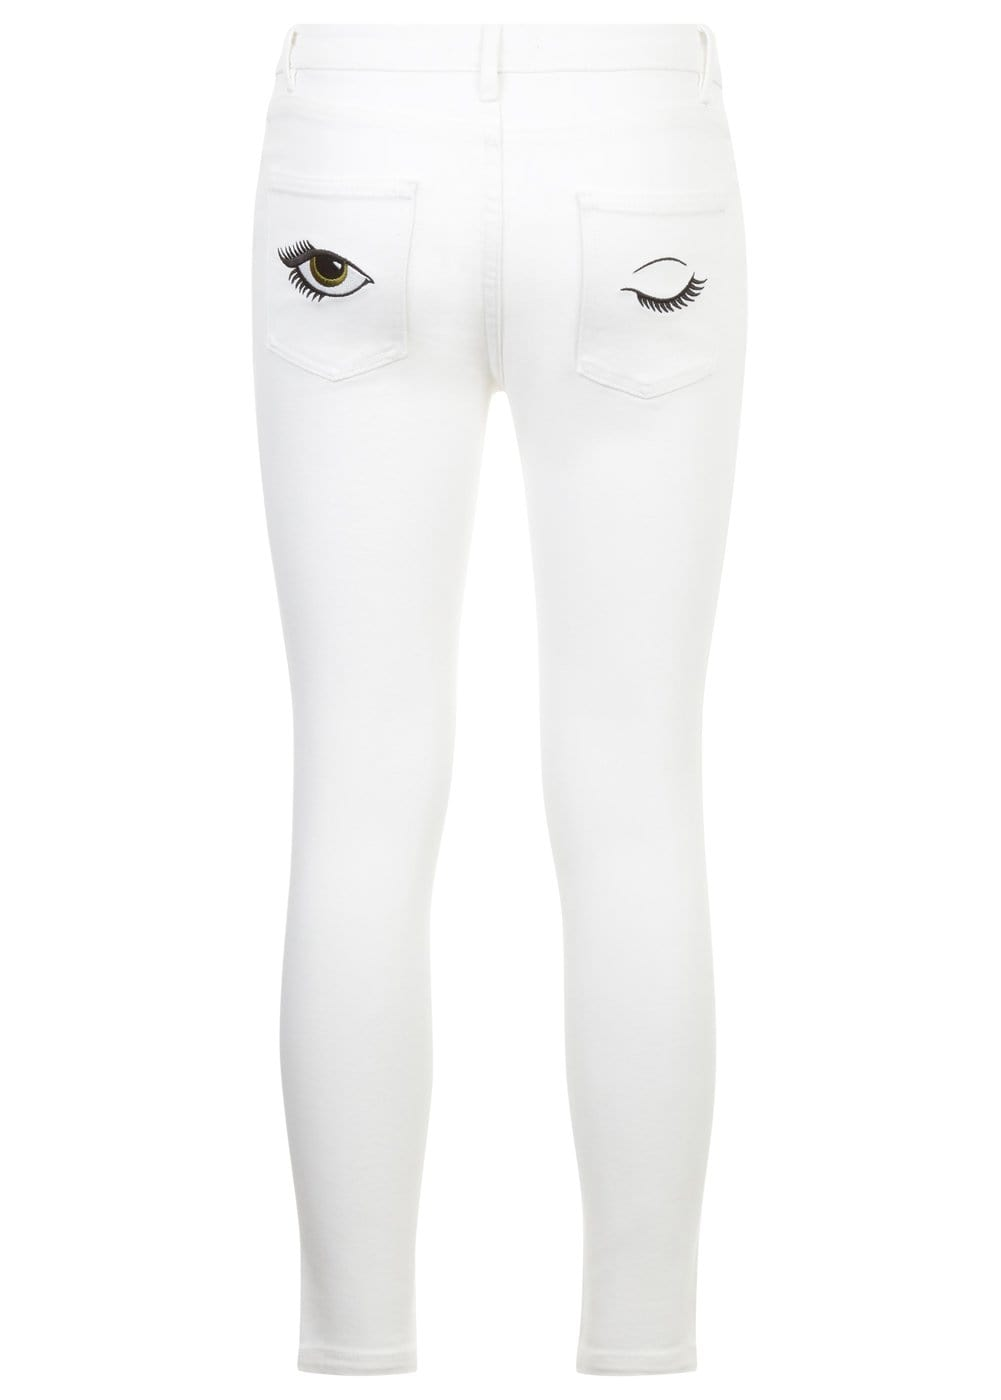 Girls White Skinny Jeans with Embroidered Eyes Pockets-Back